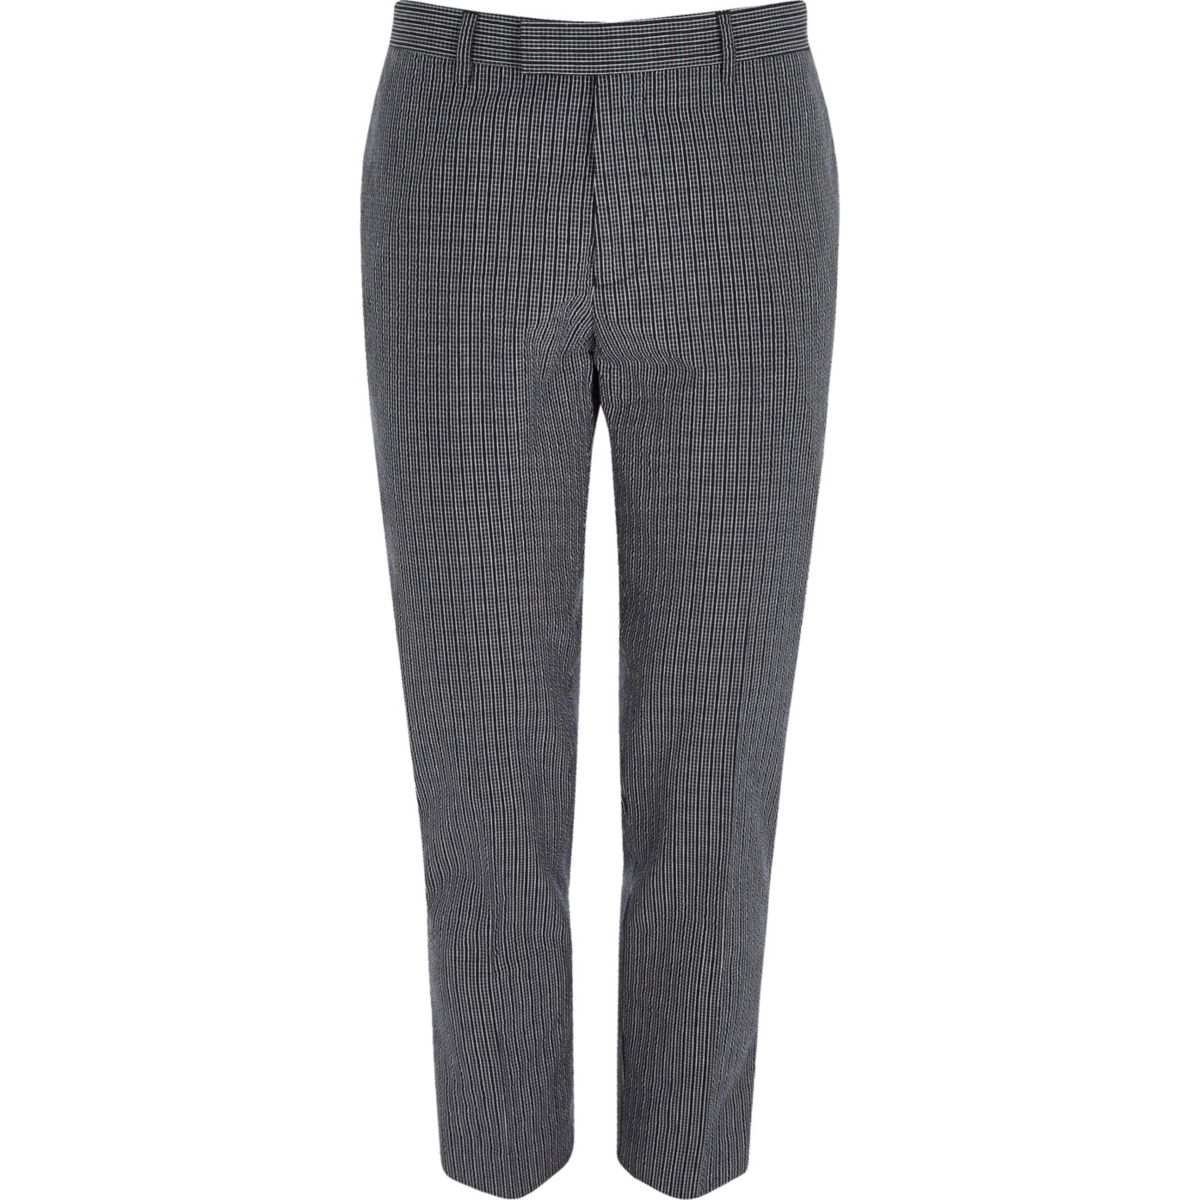 Navy seersucker skinny fit suit trousers